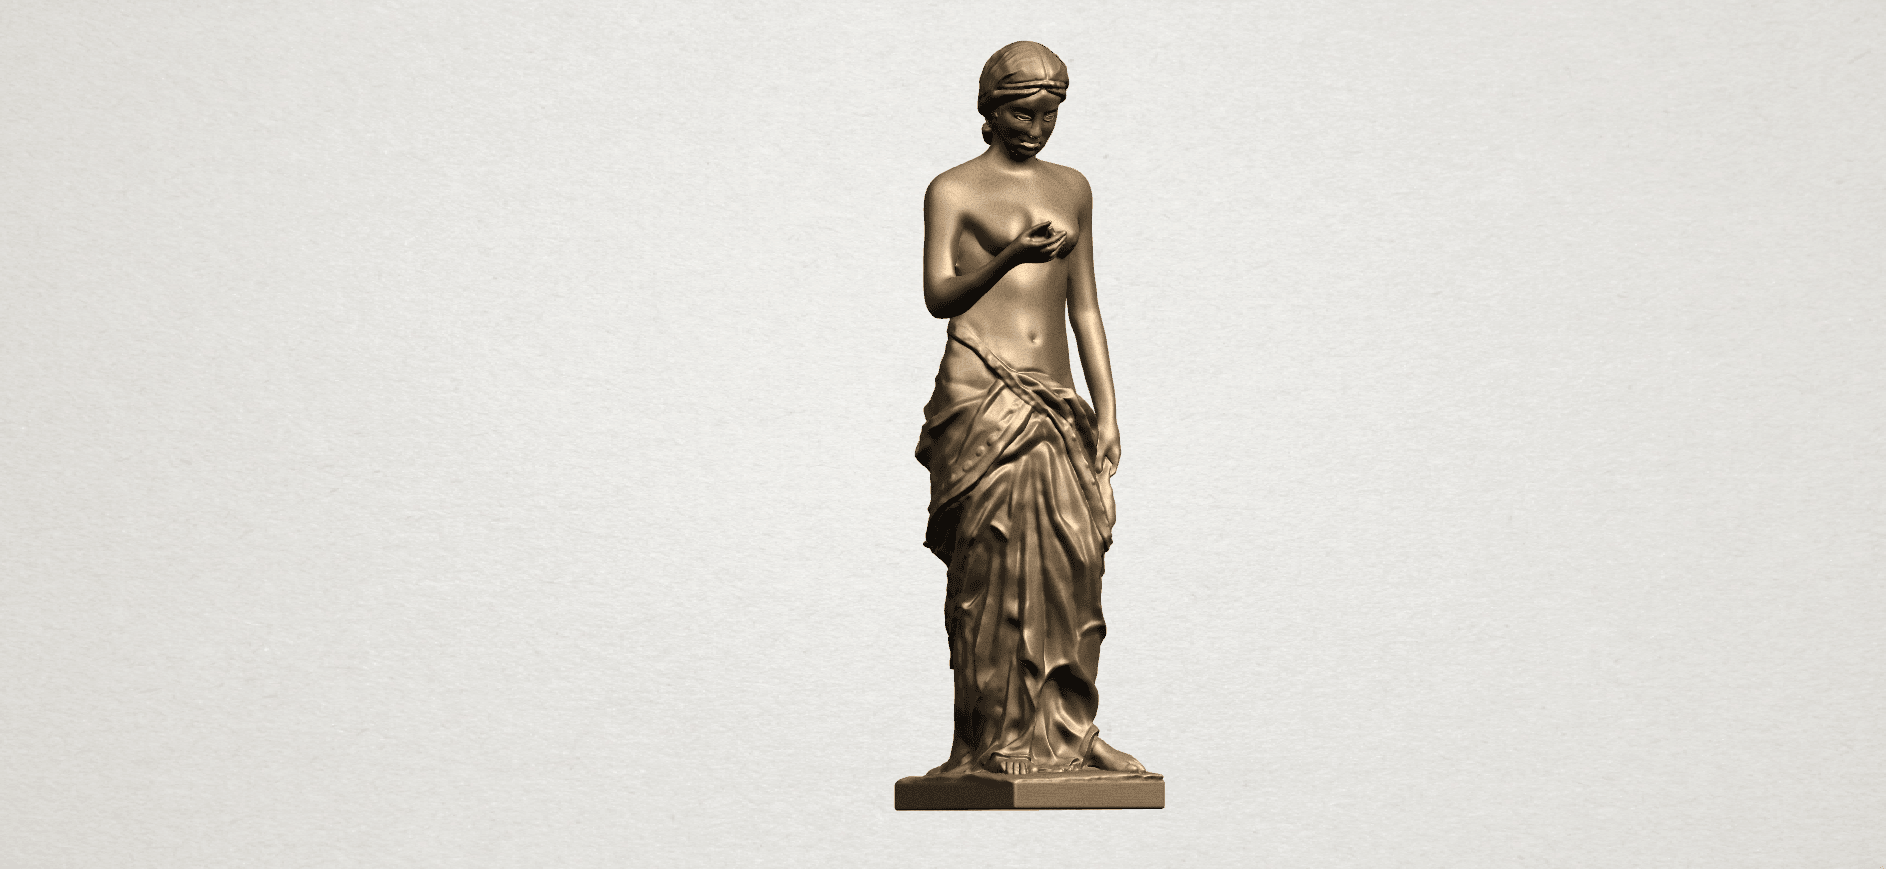 Naked Girl (vi) A07.png Download free STL file Naked Girl 06 • 3D printing design, GeorgesNikkei